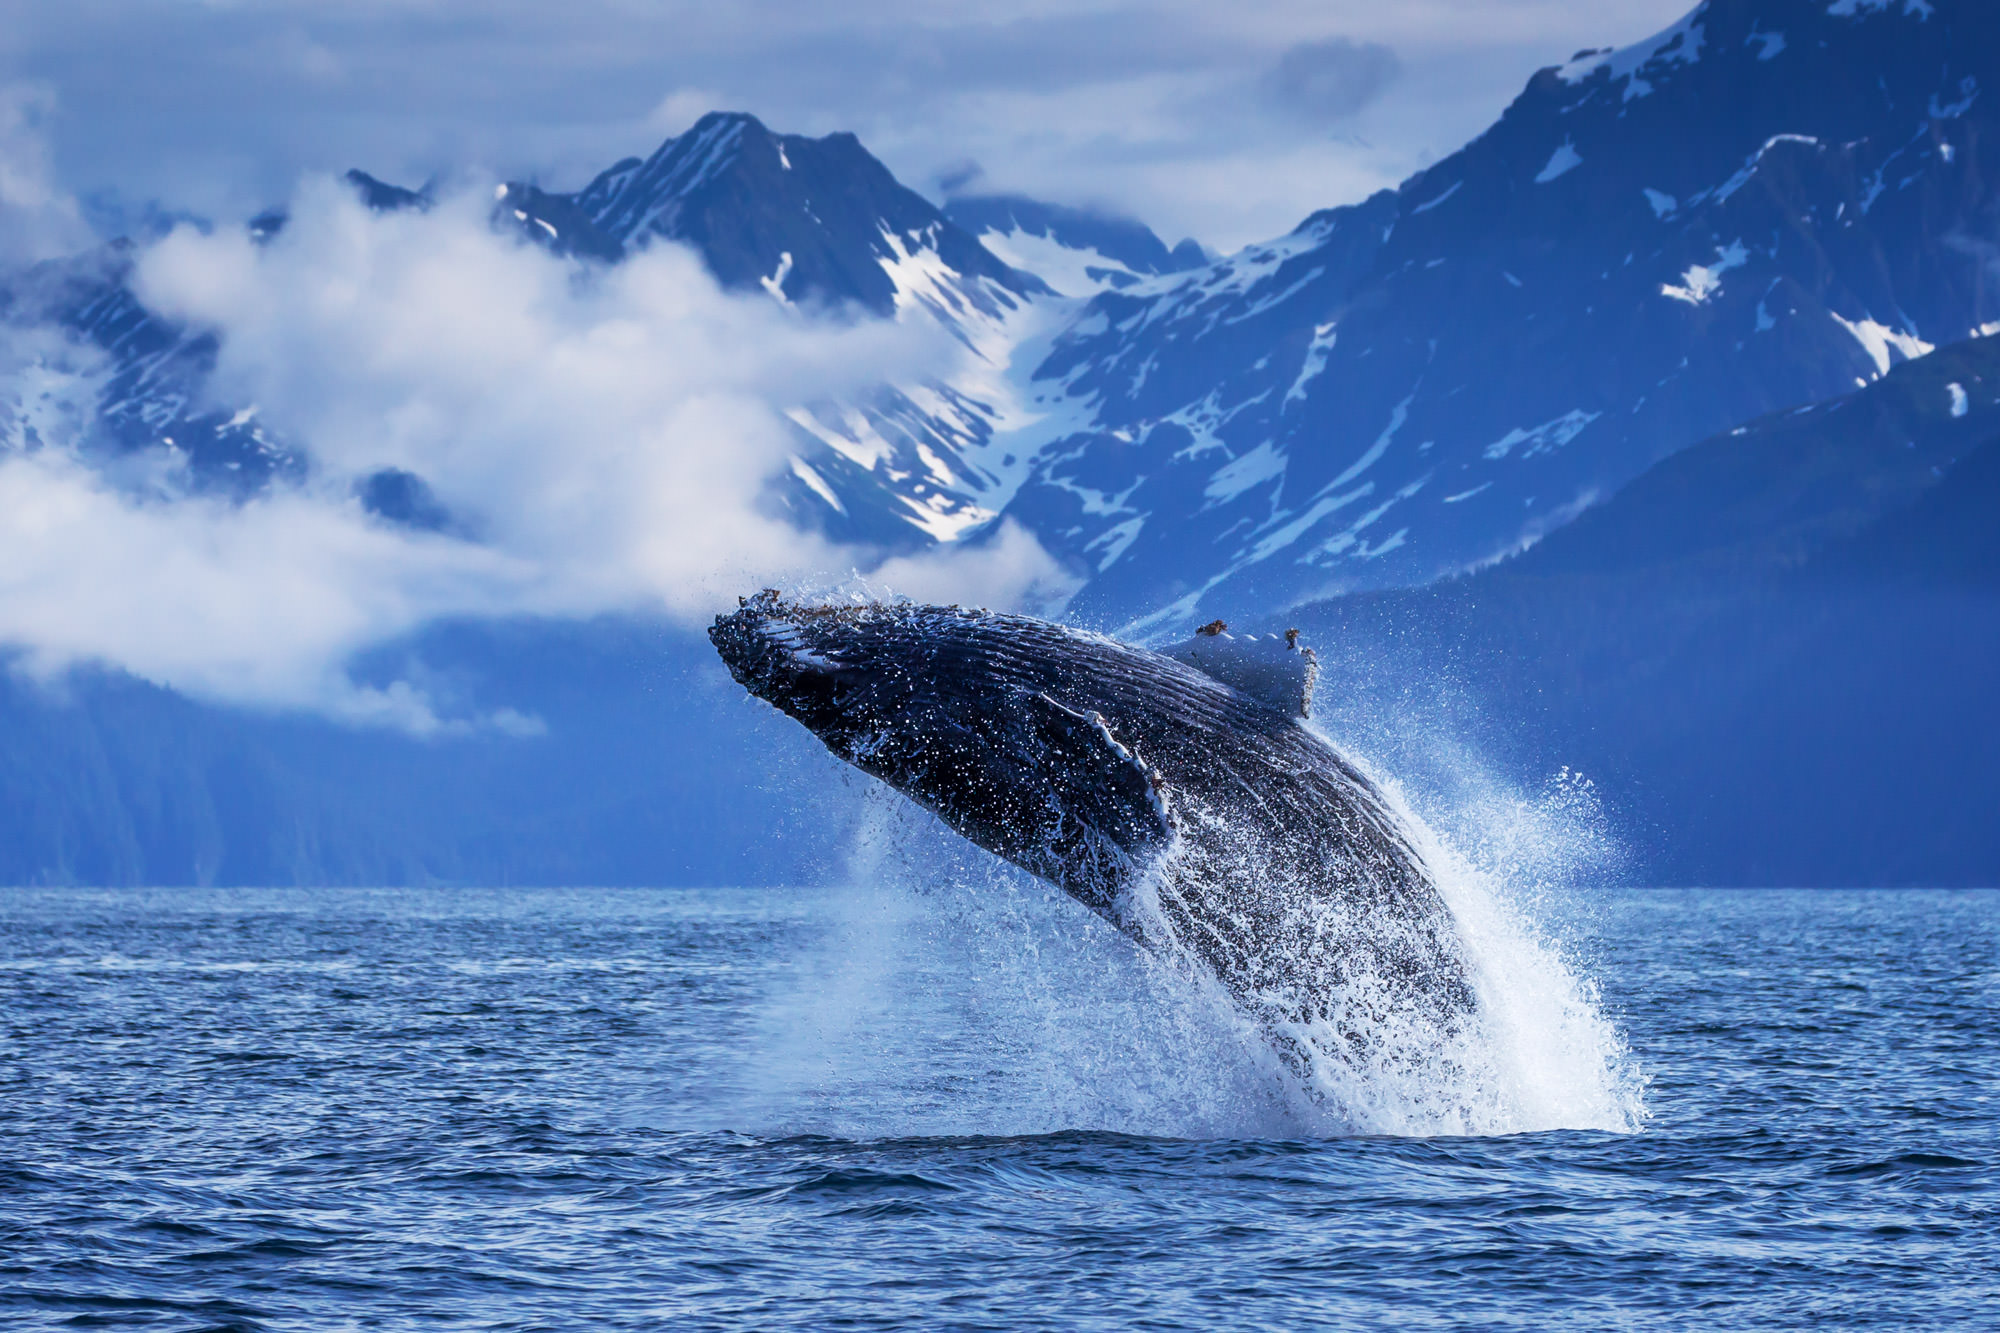 Whale, Humpback Whale, Alaska, Resurrection Bay, breach, limited edition, photograph, fine art, wildlife, photo